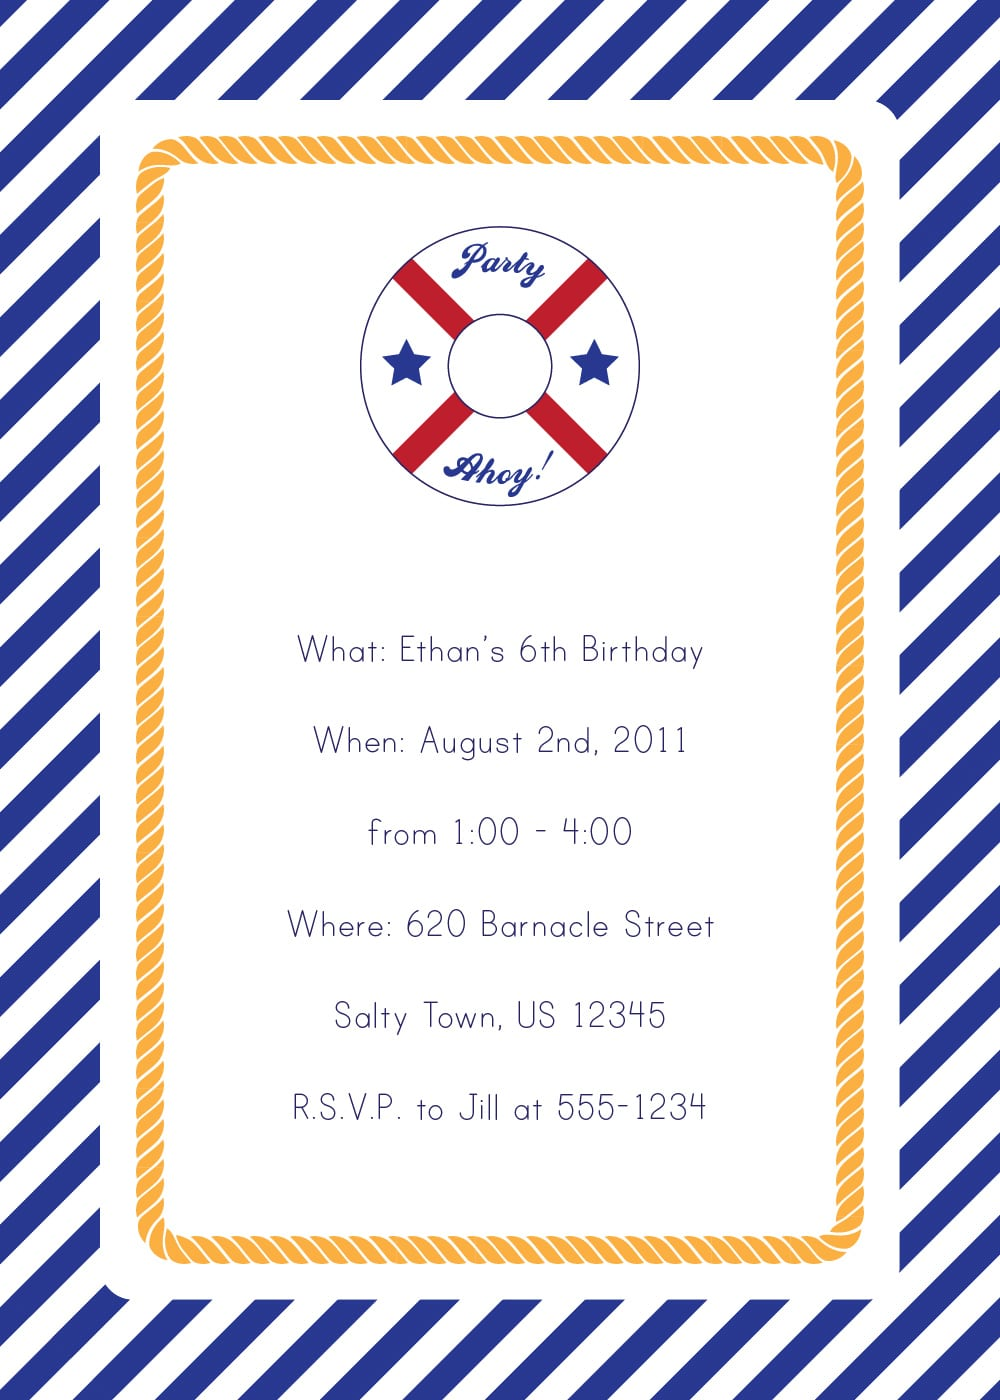 Baby Shower Invitations Nautical Theme Boy Unique Party Packs Emmy